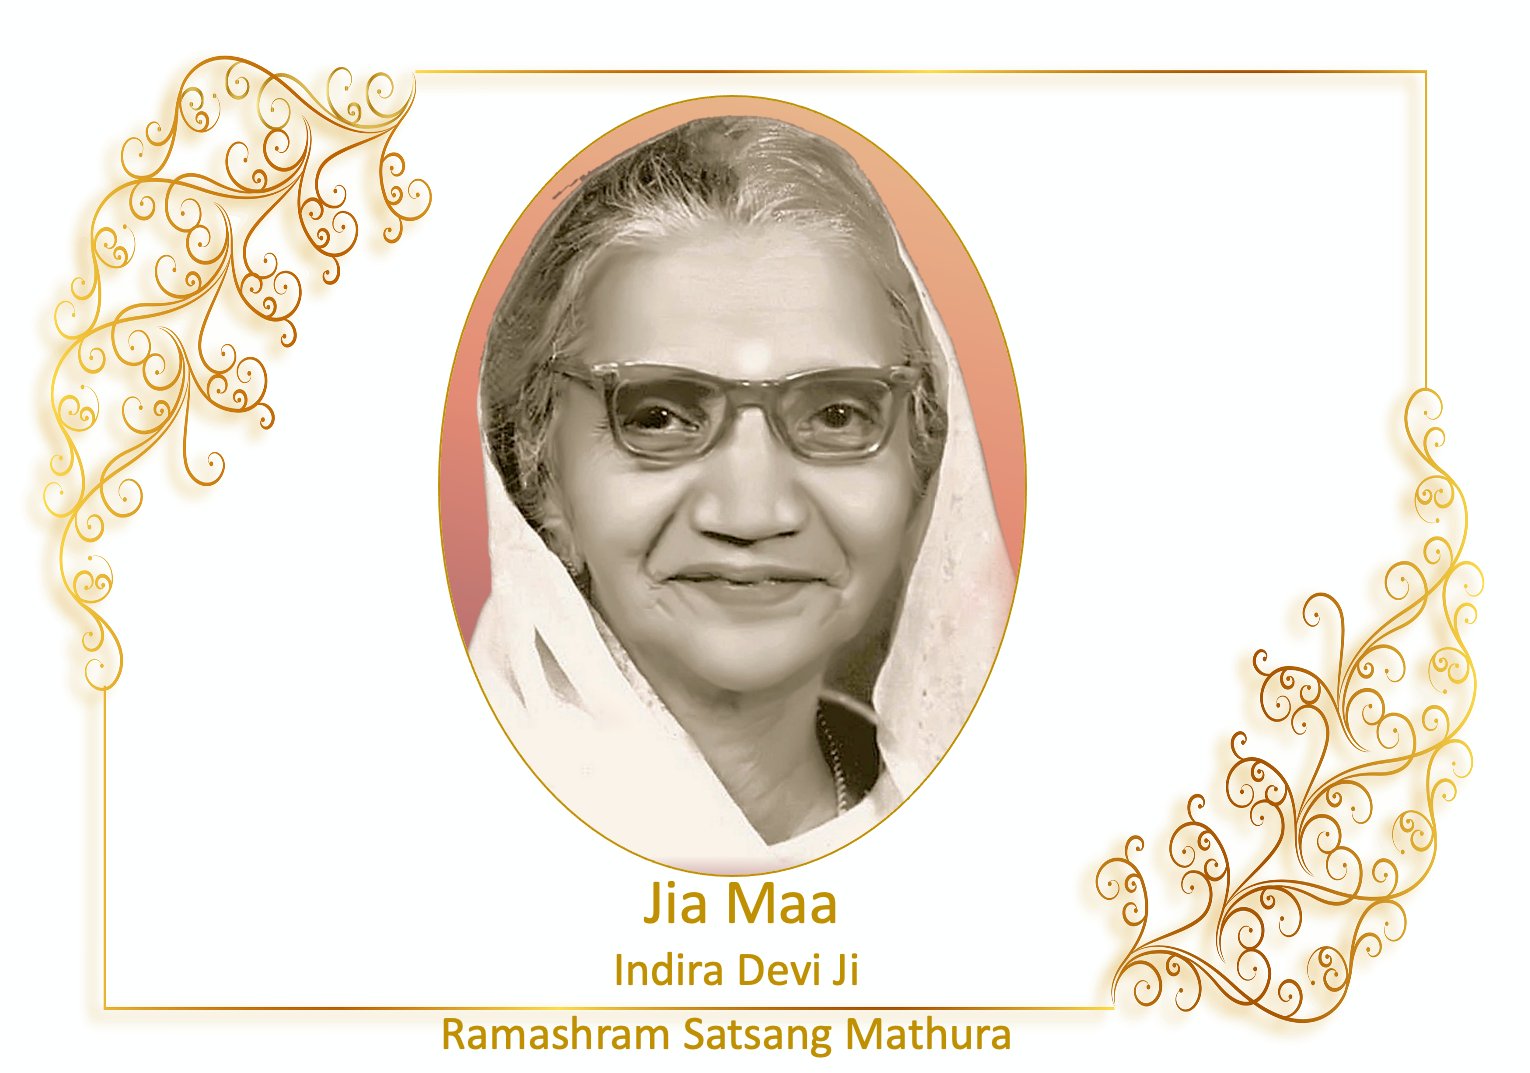 Jia Maa: The Epitome of Love, Compassion and Selfless Service